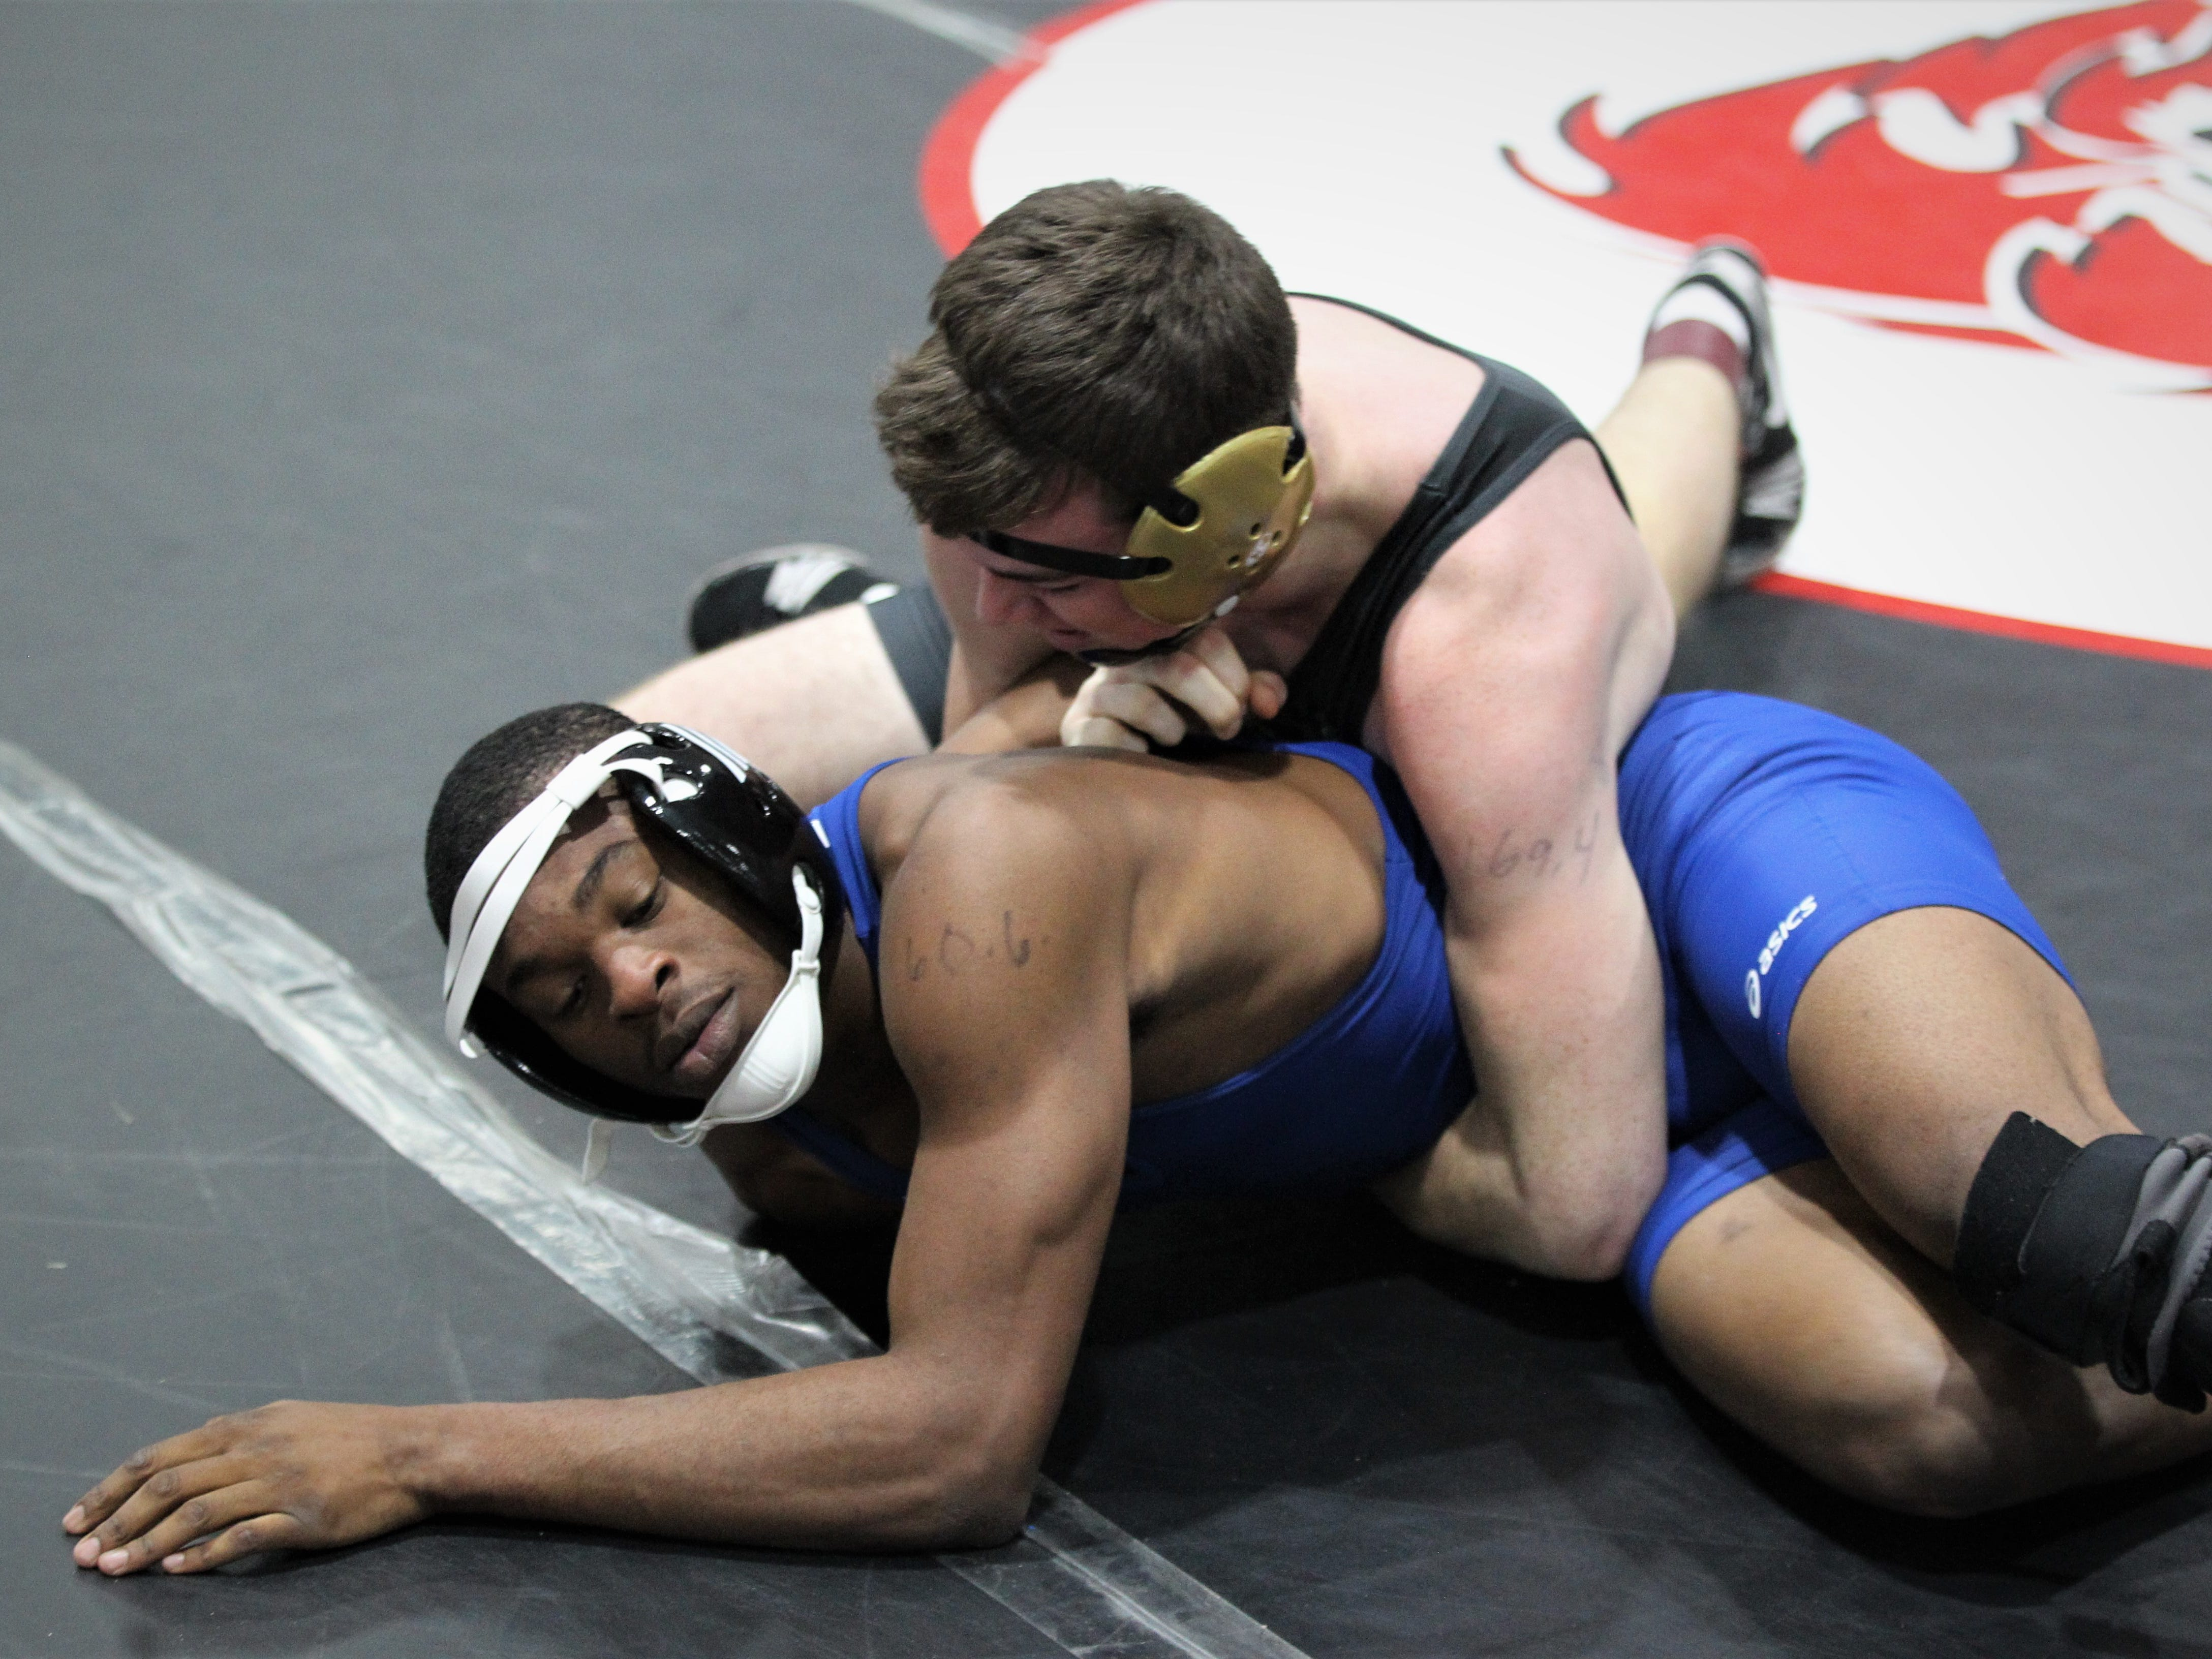 Florida High's Noah Perdue wrestles Rickards' Devin Bailey at the Cam Brown Seminole Classic wrestling tournament at Florida High on Dec. 7-8, 2018.